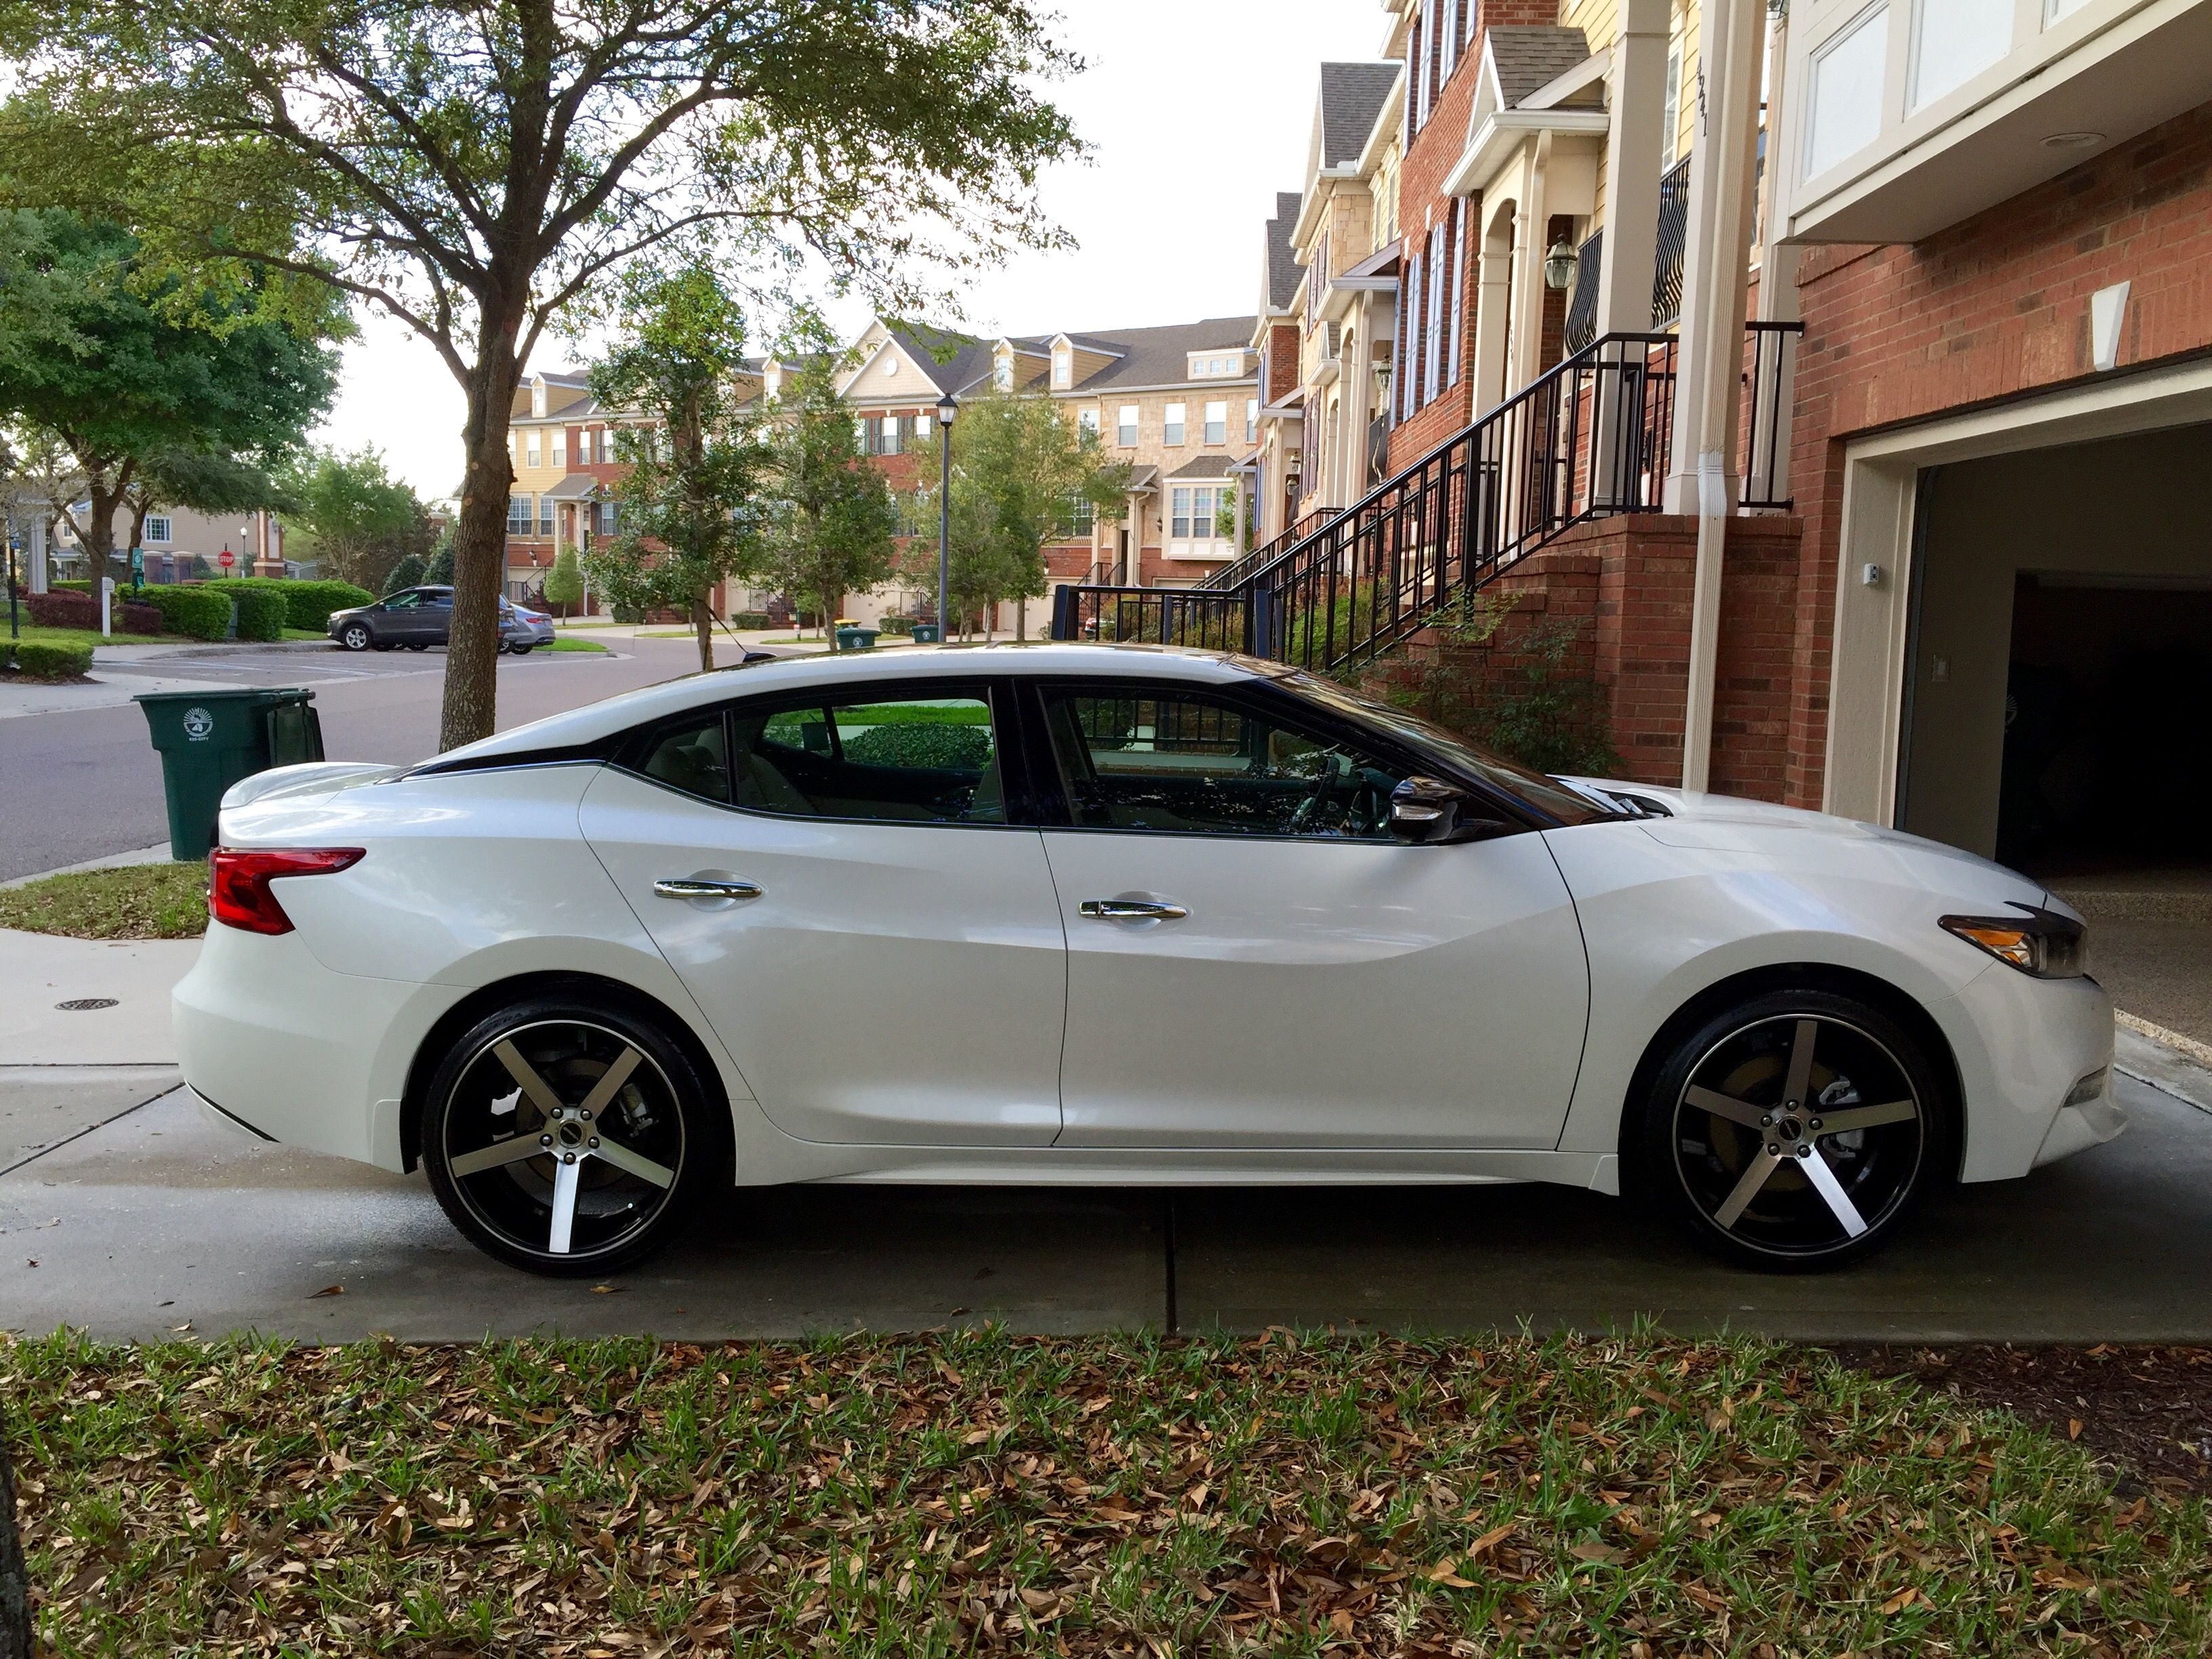 2016 nissan maxima rides pinterest nissan maxima nissan and cars